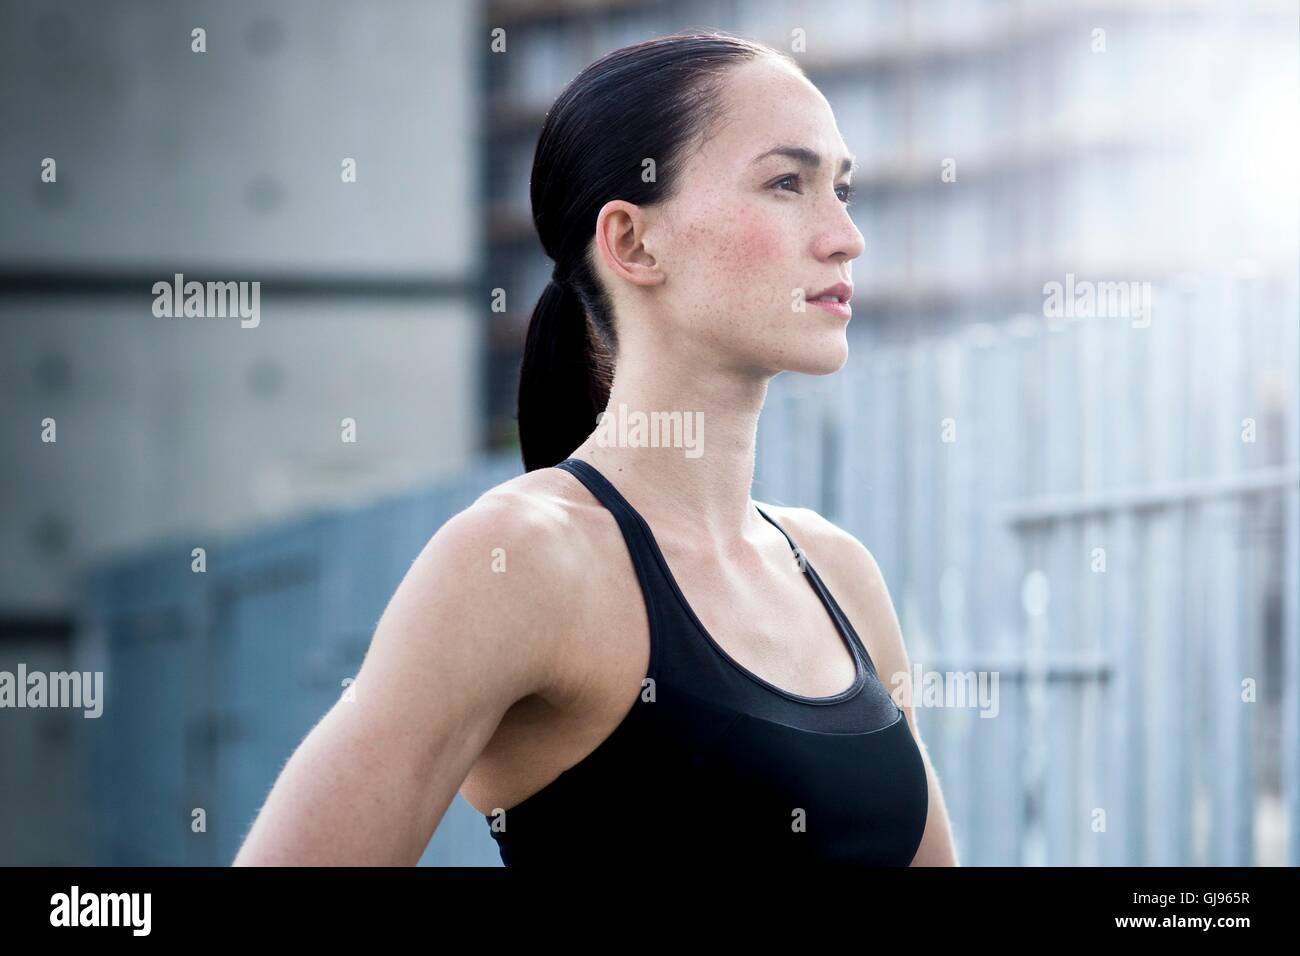 MODEL RELEASED. Young woman in crop top looking away. - Stock Image